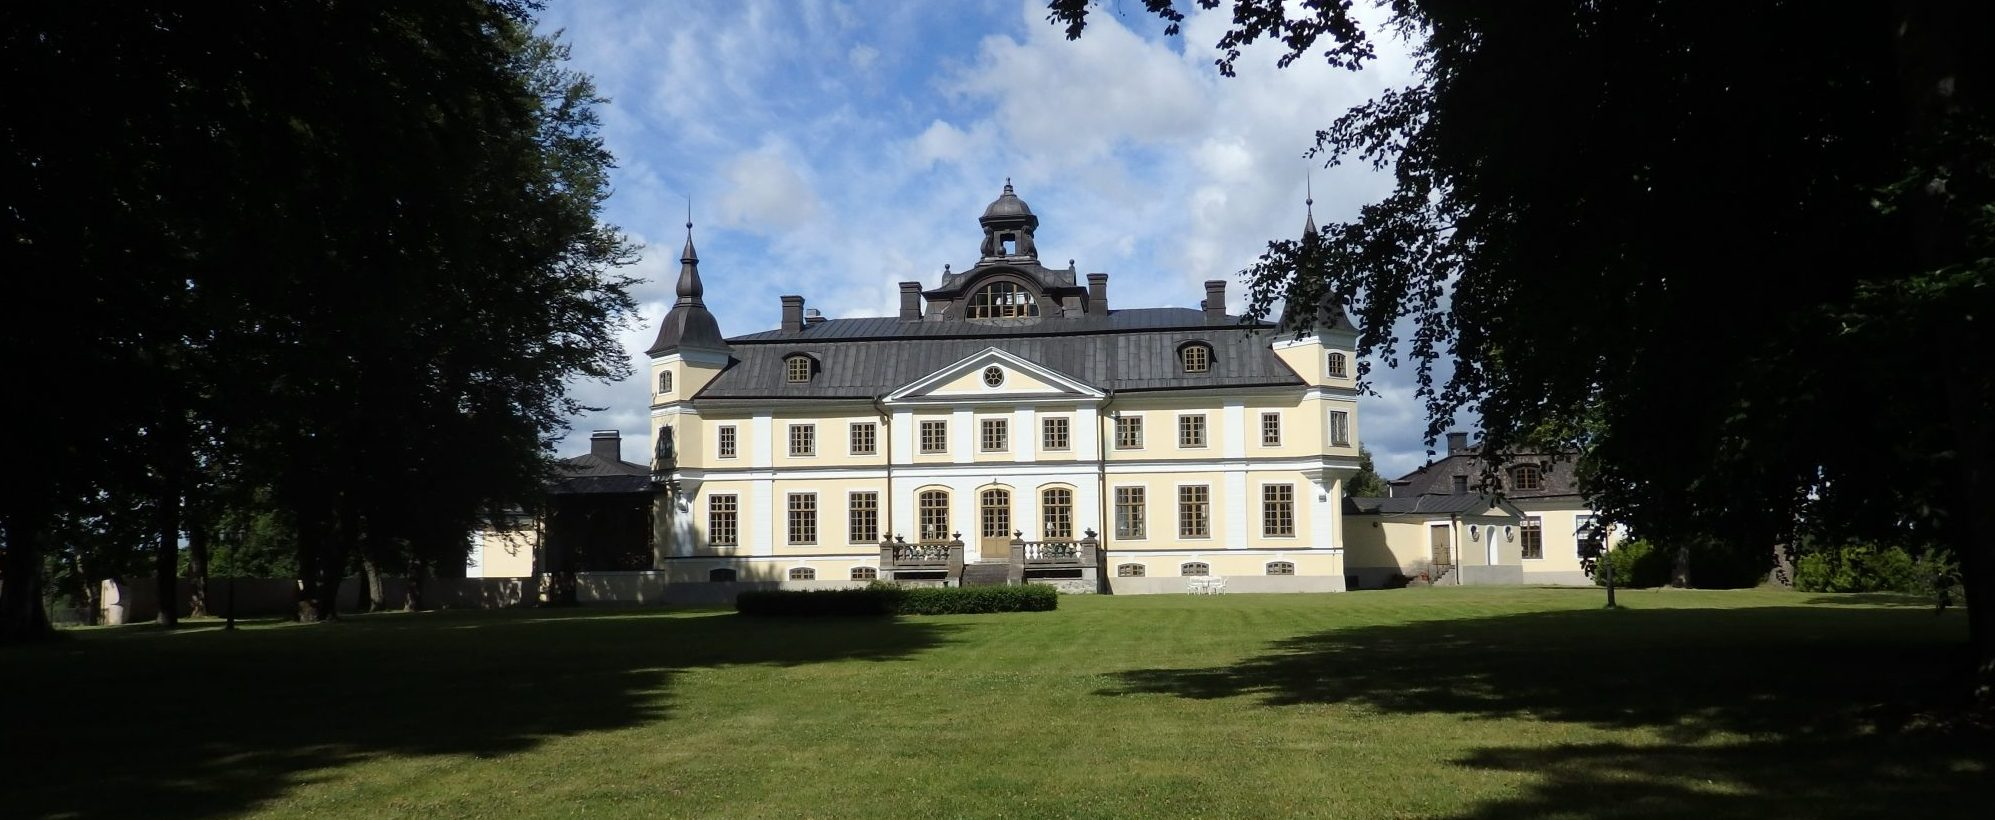 Rear view of Sparreholms manor in Sormland, Sweden